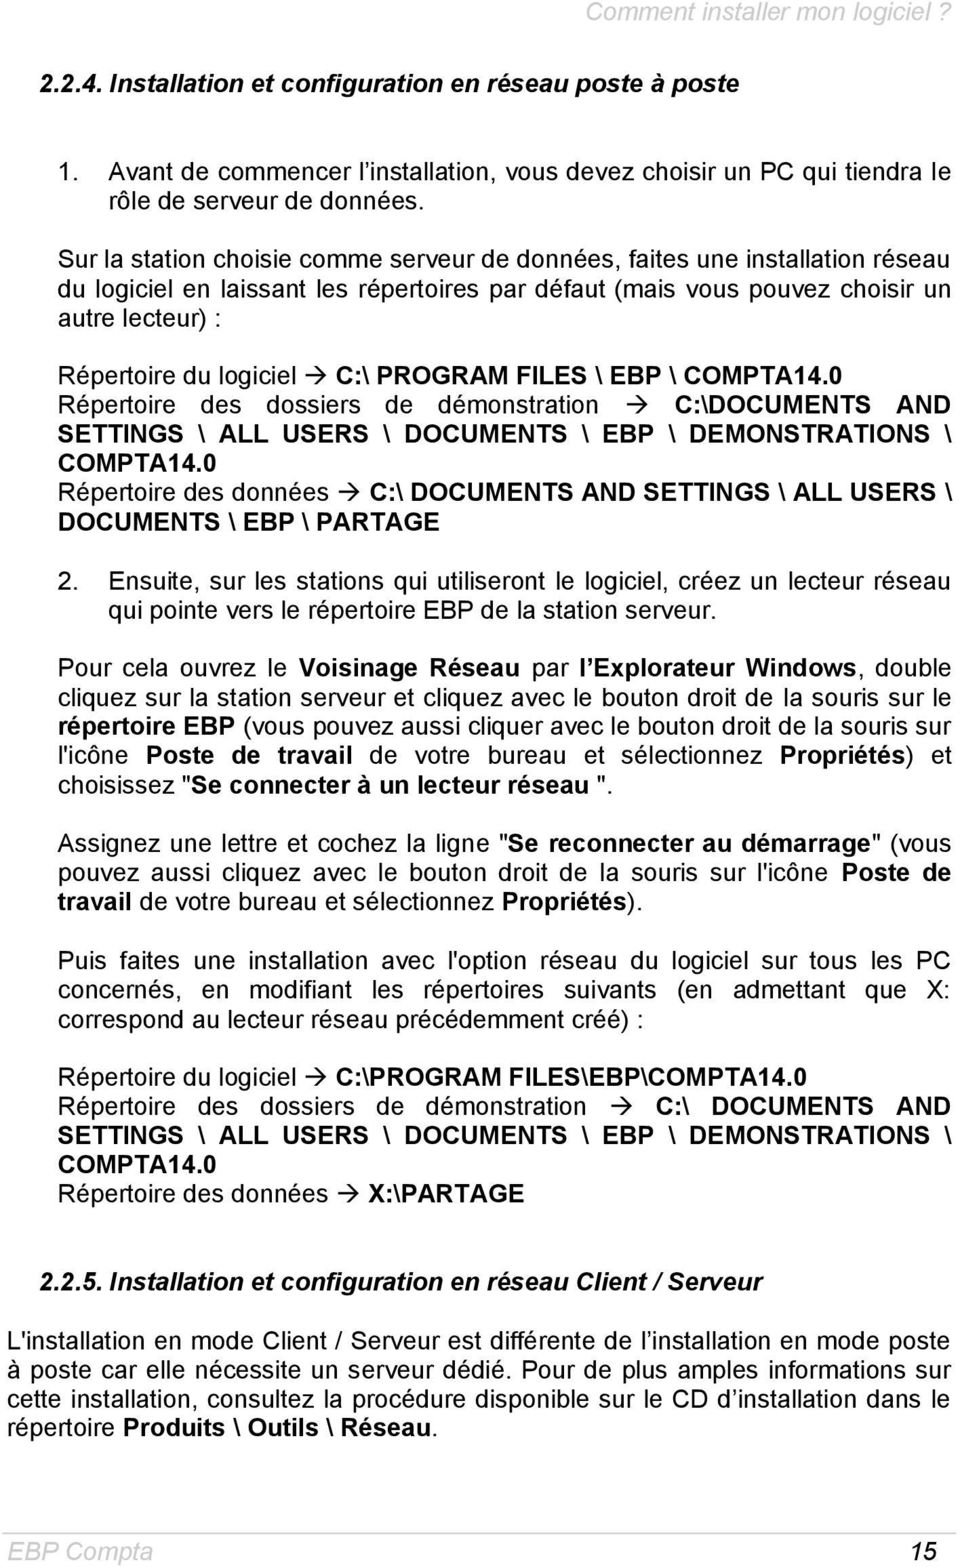 C:\ PROGRAM FILES \ EBP \ COMPTA14.0 Répertoire des dossiers de démonstration C:\DOCUMENTS AND SETTINGS \ ALL USERS \ DOCUMENTS \ EBP \ DEMONSTRATIONS \ COMPTA14.